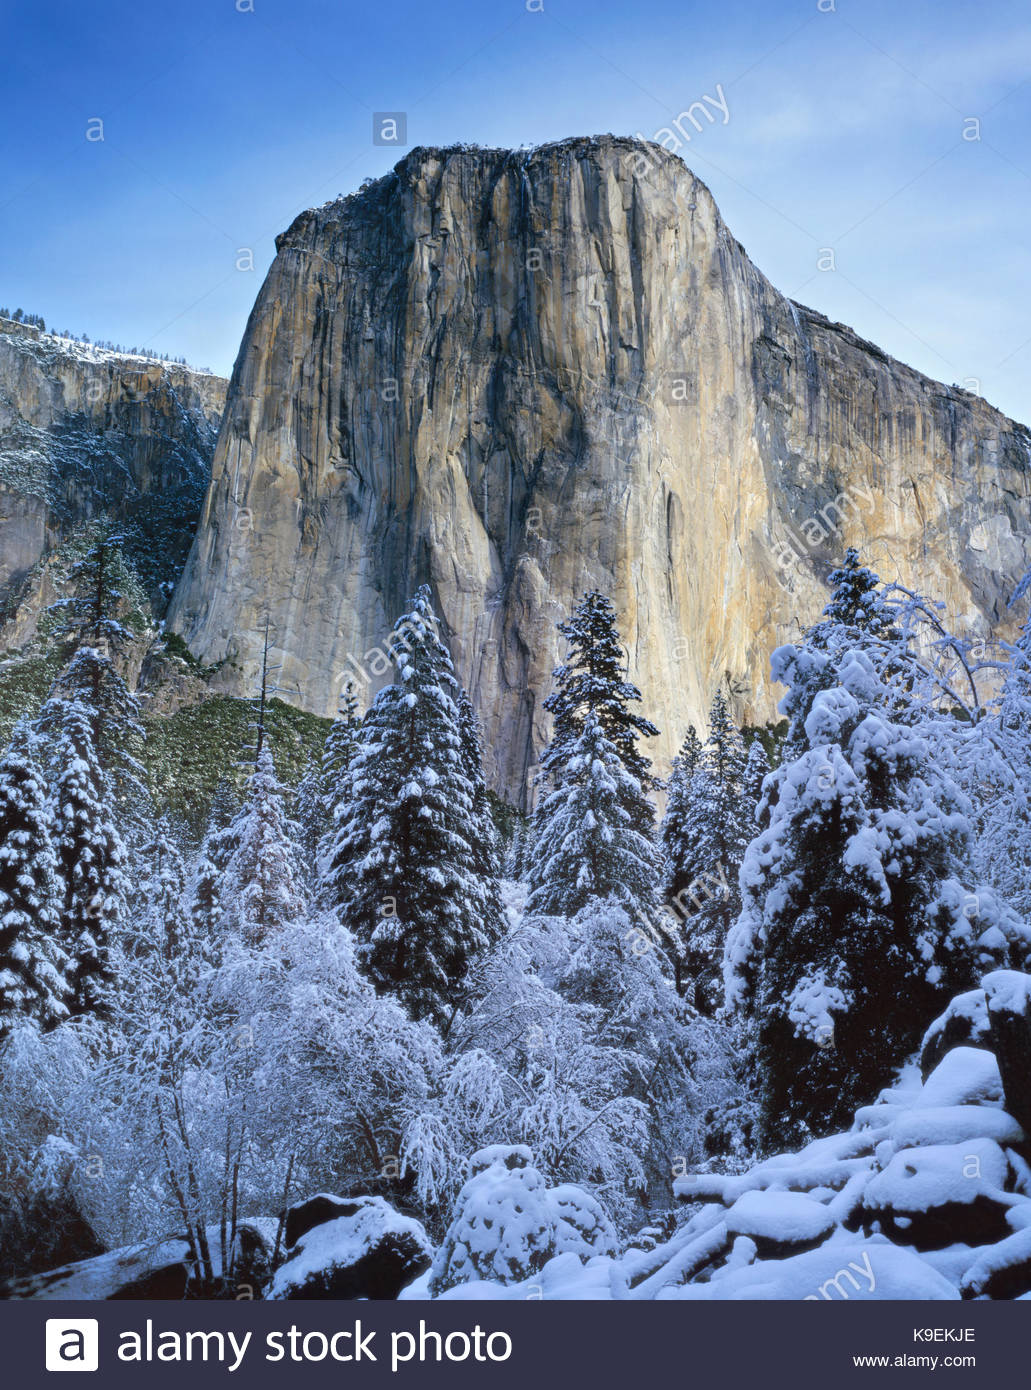 El Capitan Seen through Forest Clearing, Yosemite National Park, California - Stock Image